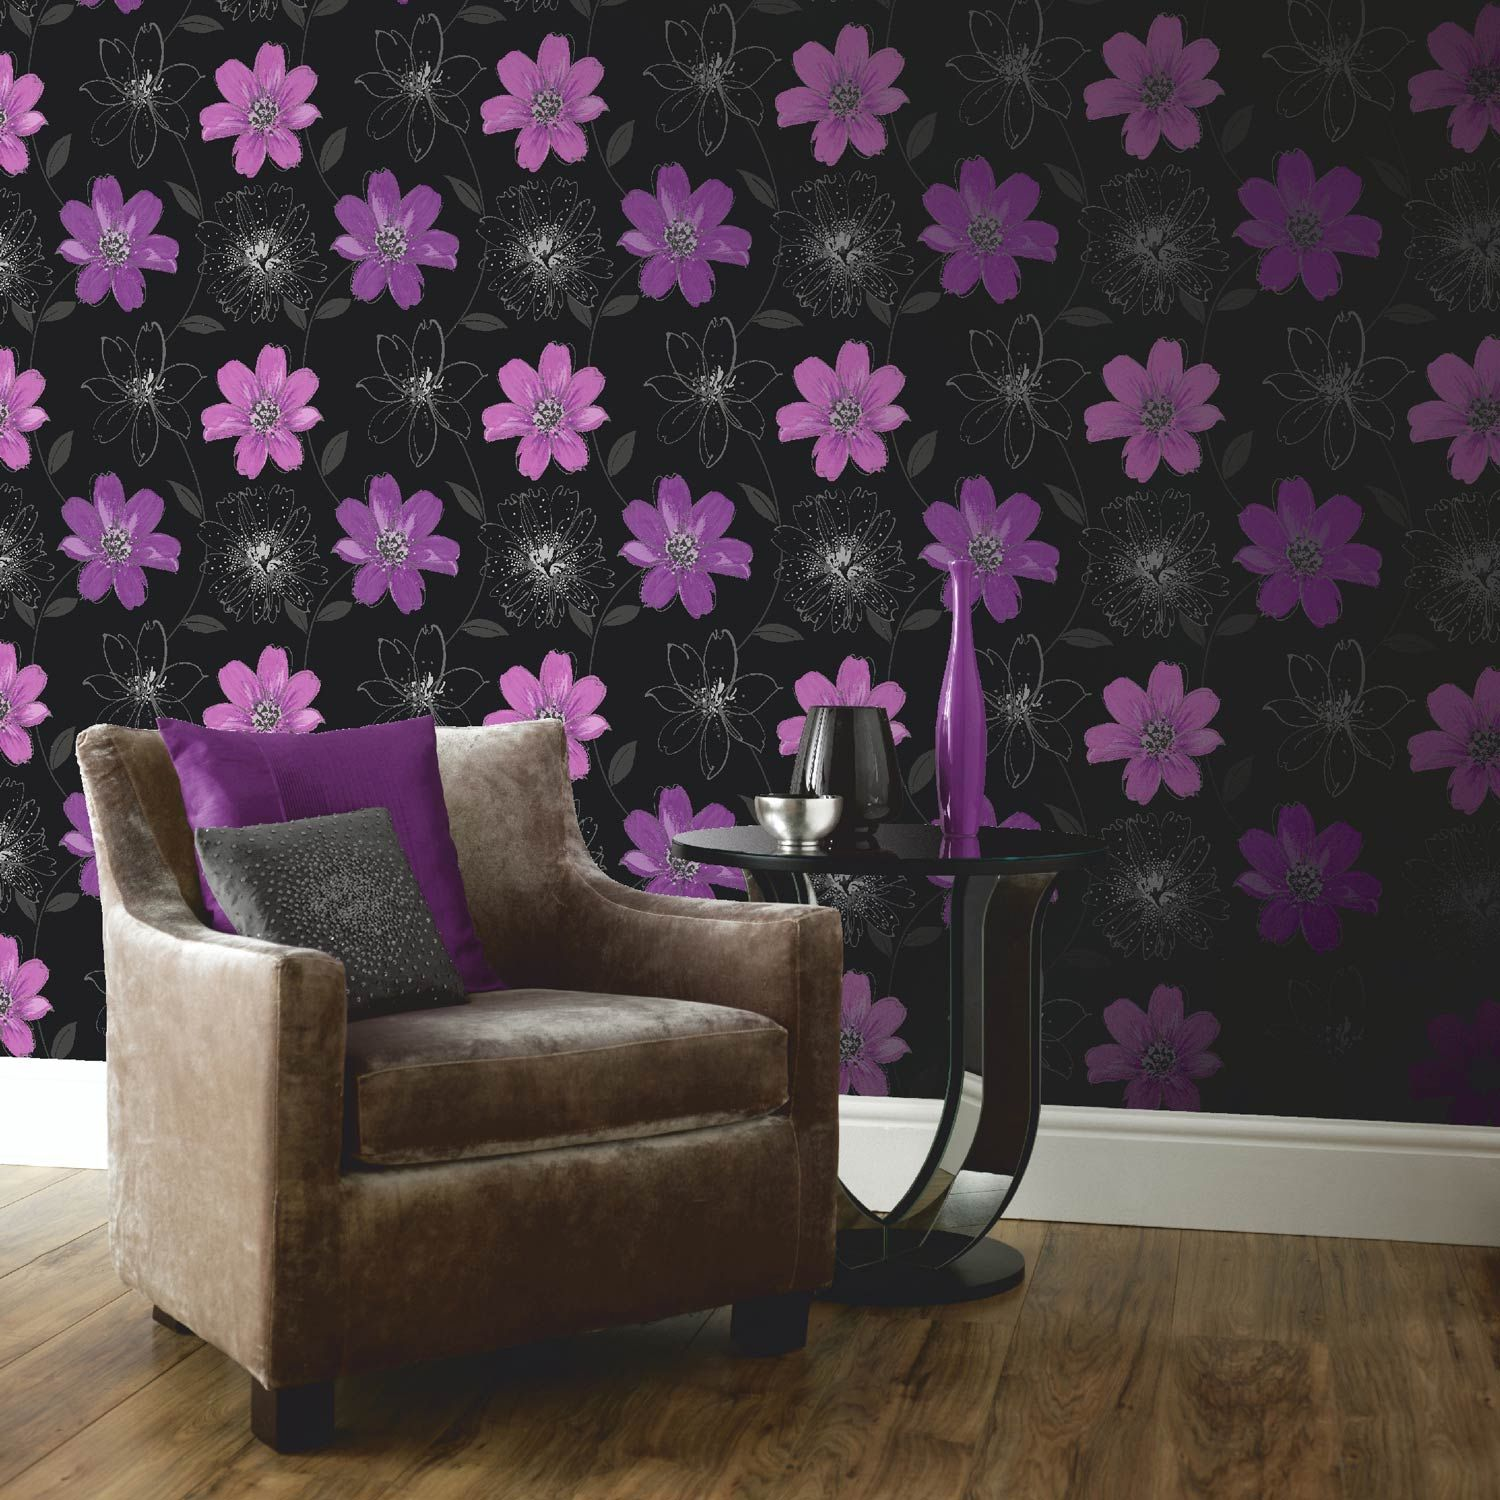 Pink And Purple Wallpaper For A Bedroom Buy The Samba Black And Purple Floral Motif Wallpaper By Arthouse